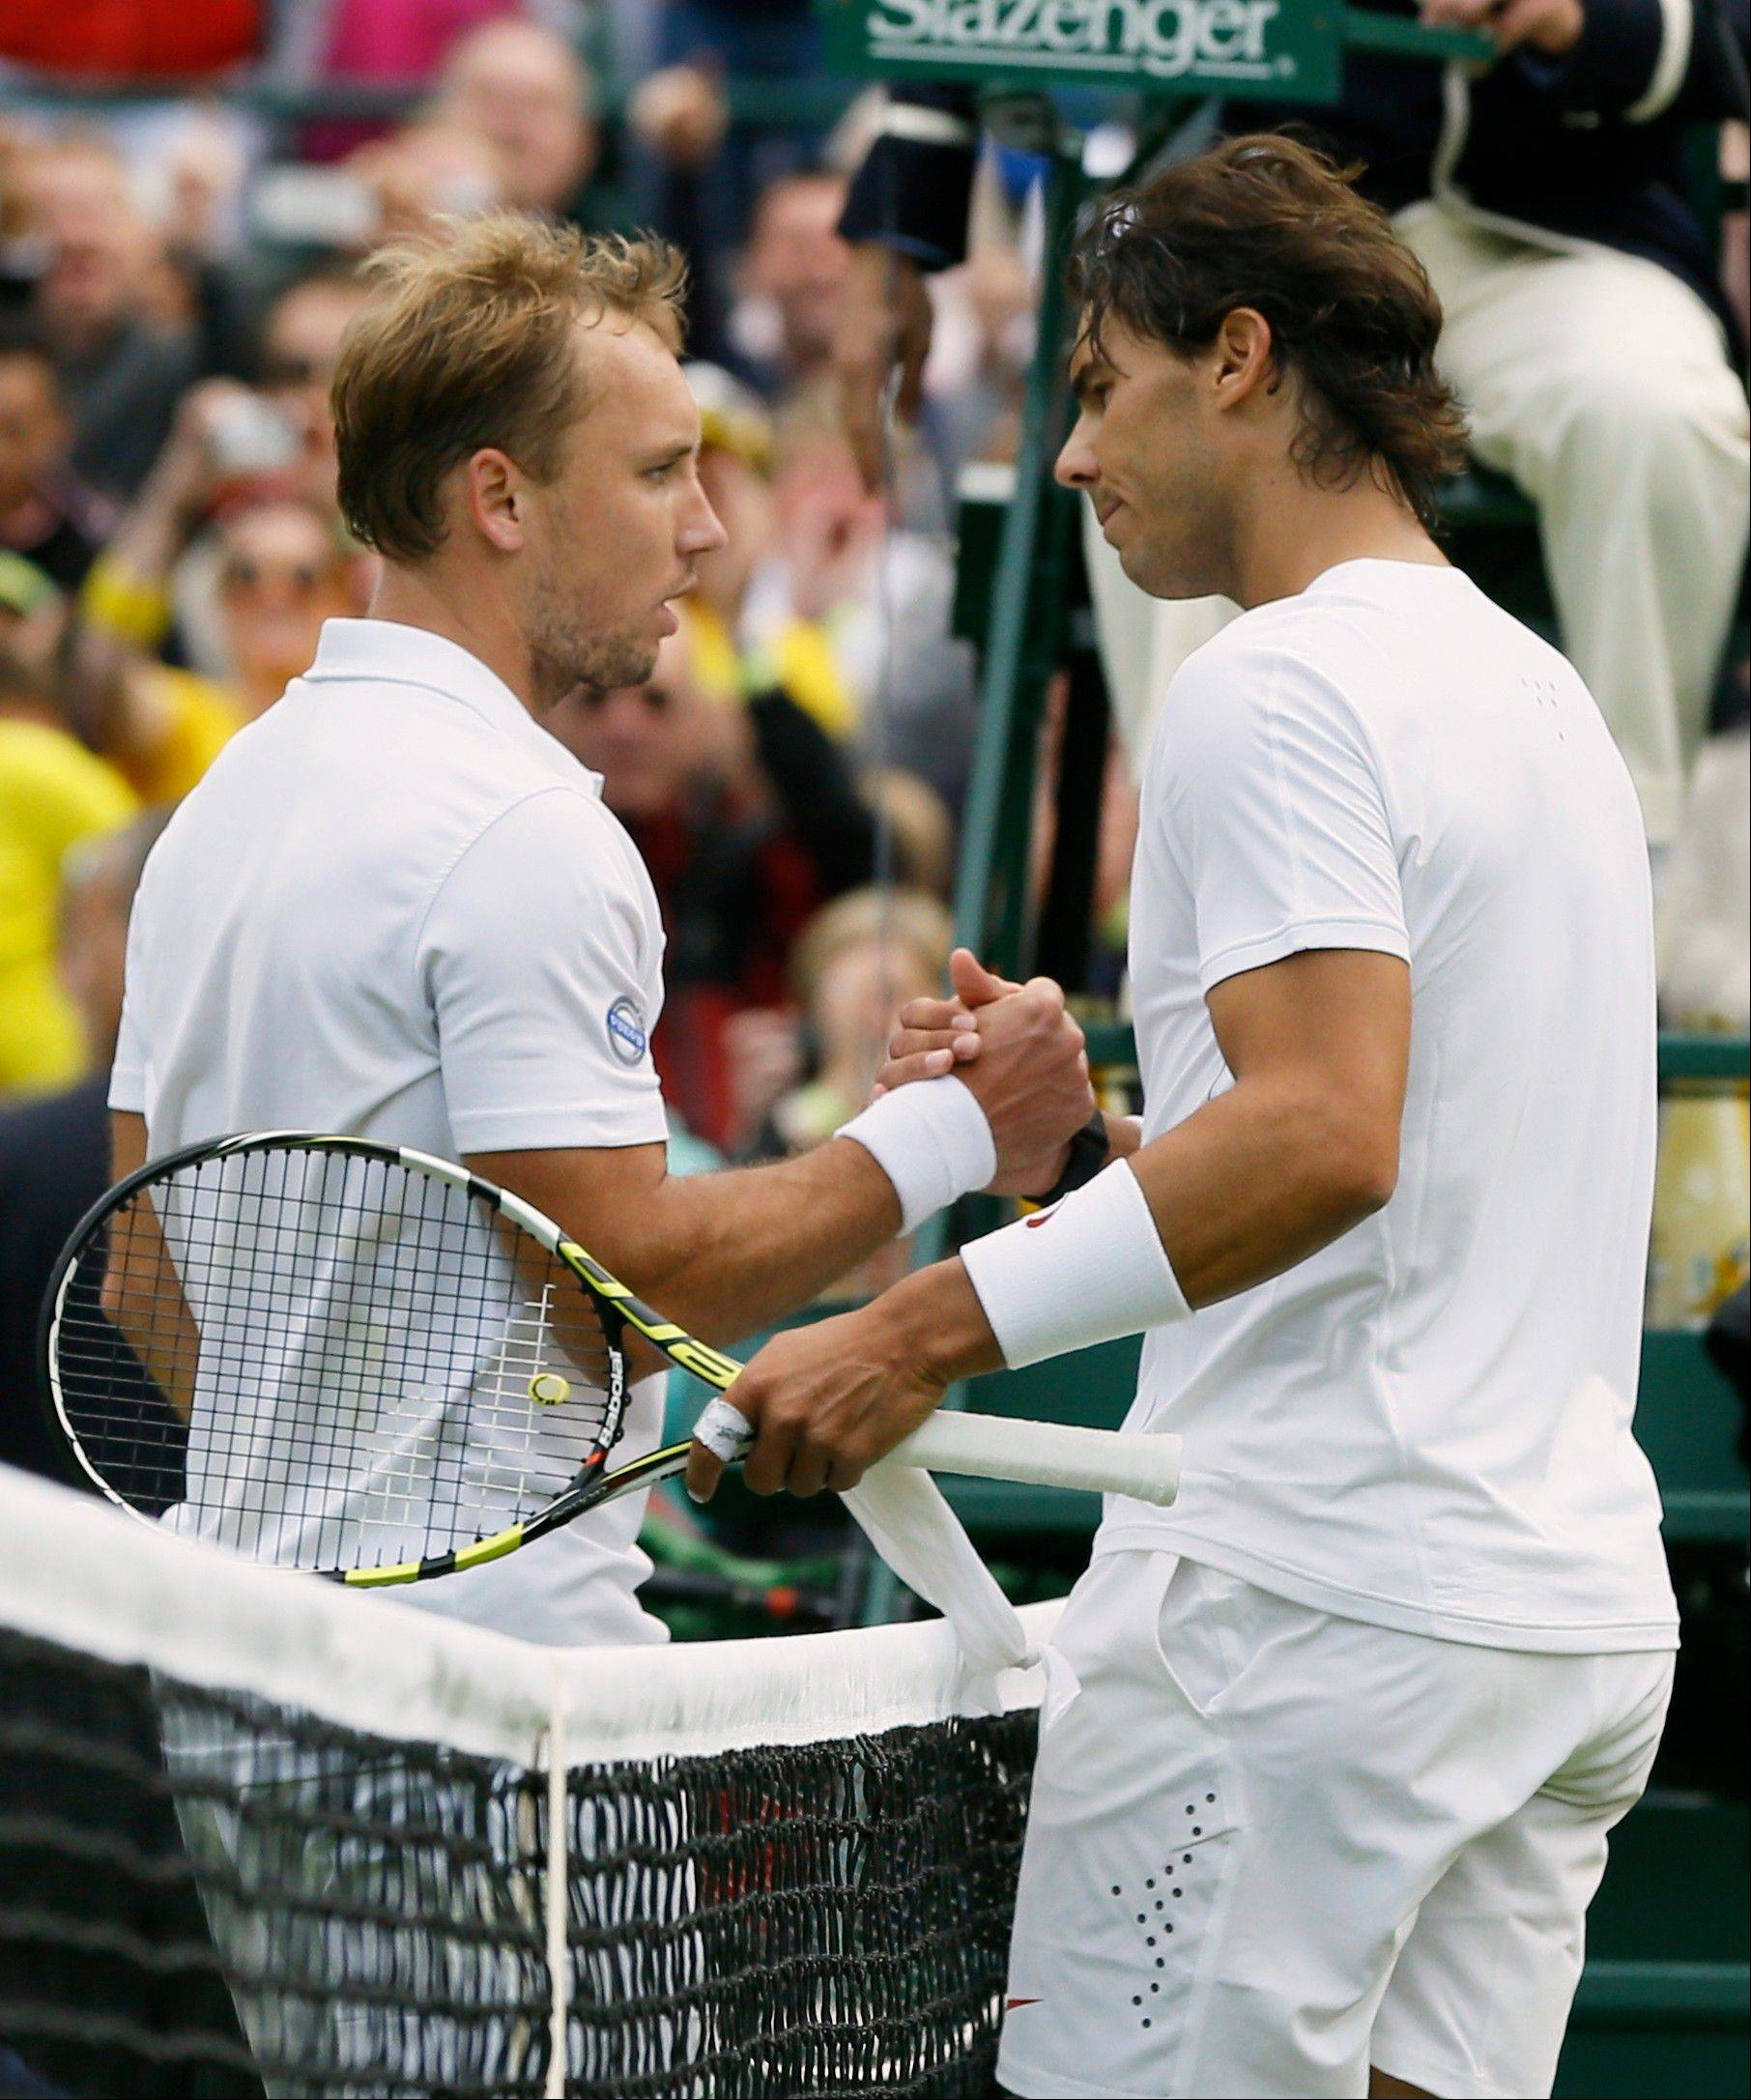 Rafael Nadal shakes hands with Steve Darcis Monday after he lost in their first round singles match at the All England Lawn Tennis Championships in Wimbledon.